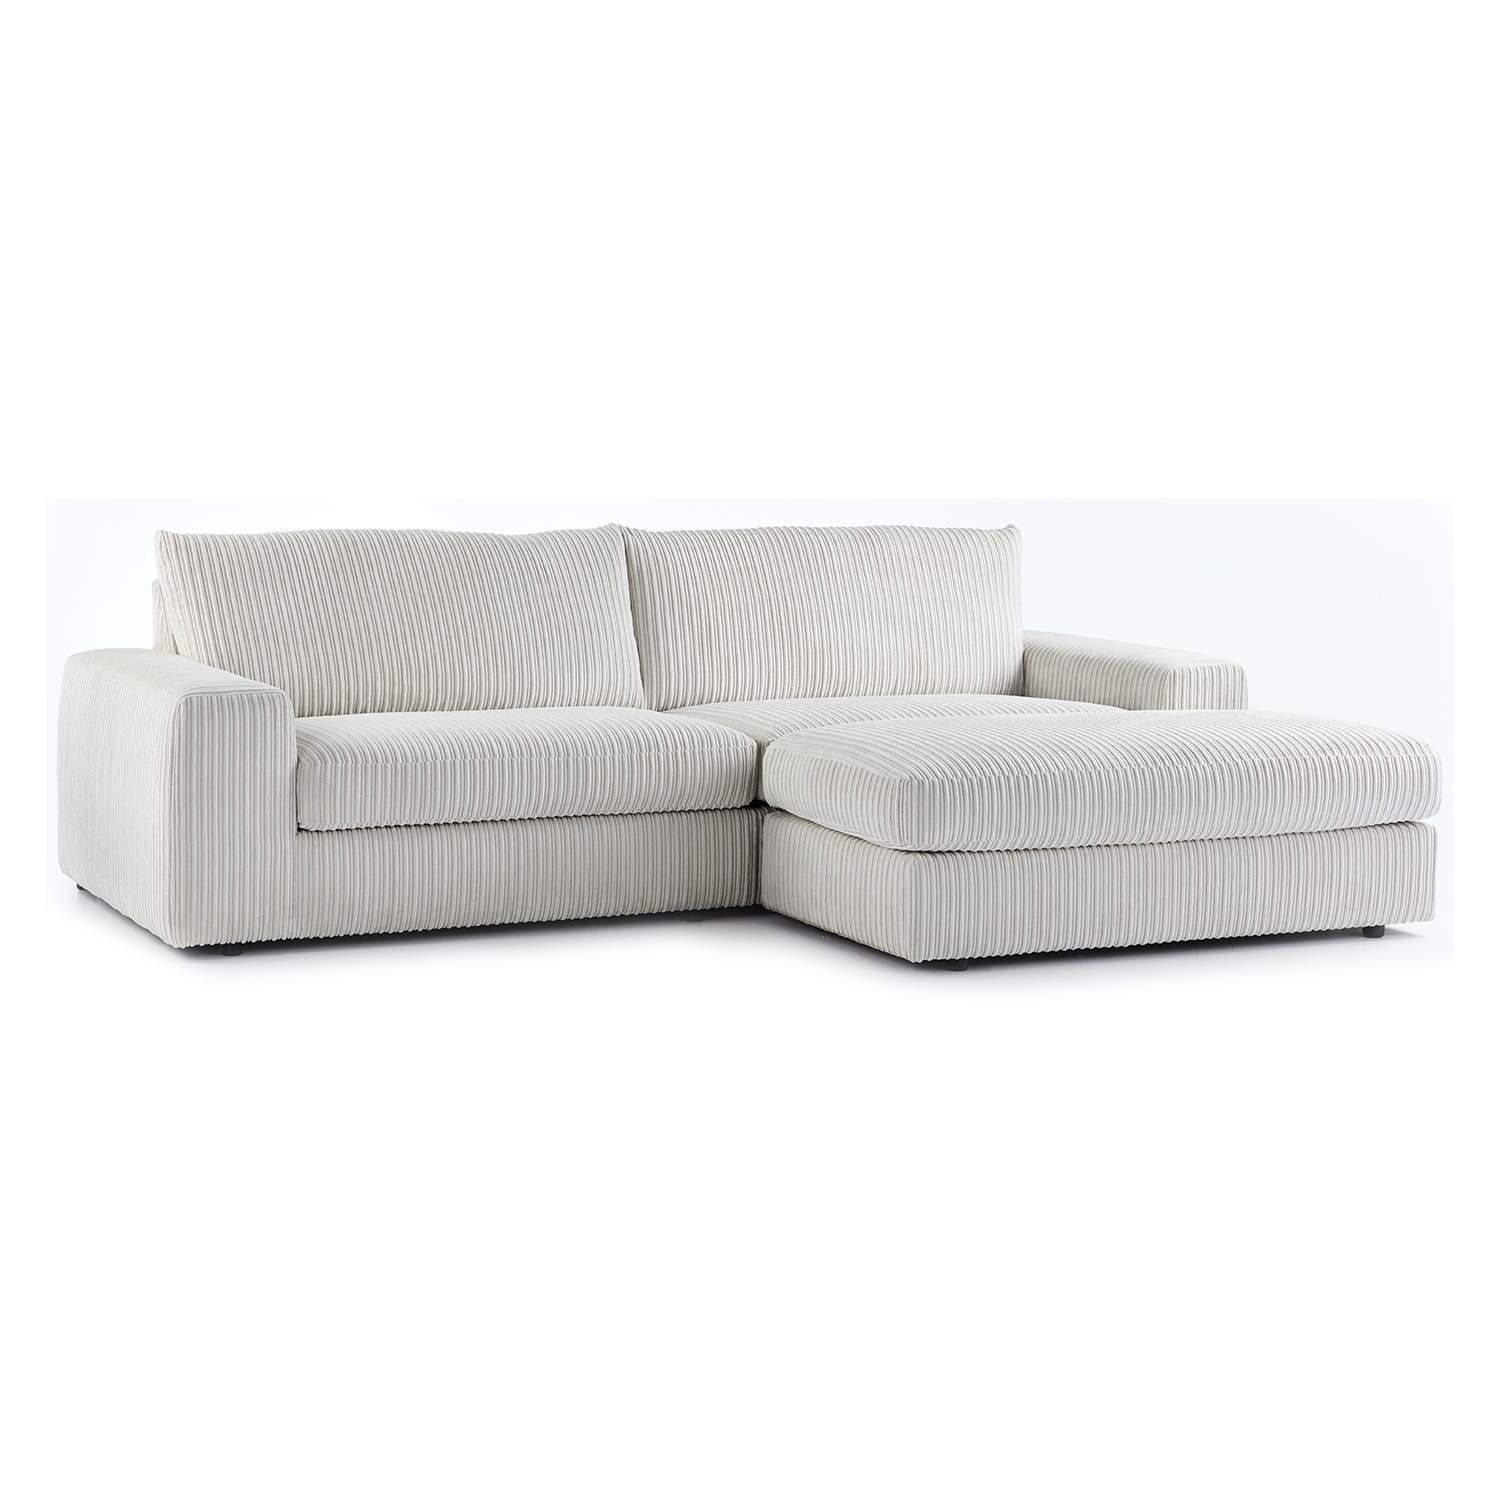 The Champ Fabric Reversible Corner Chaise Sofa Just Sit